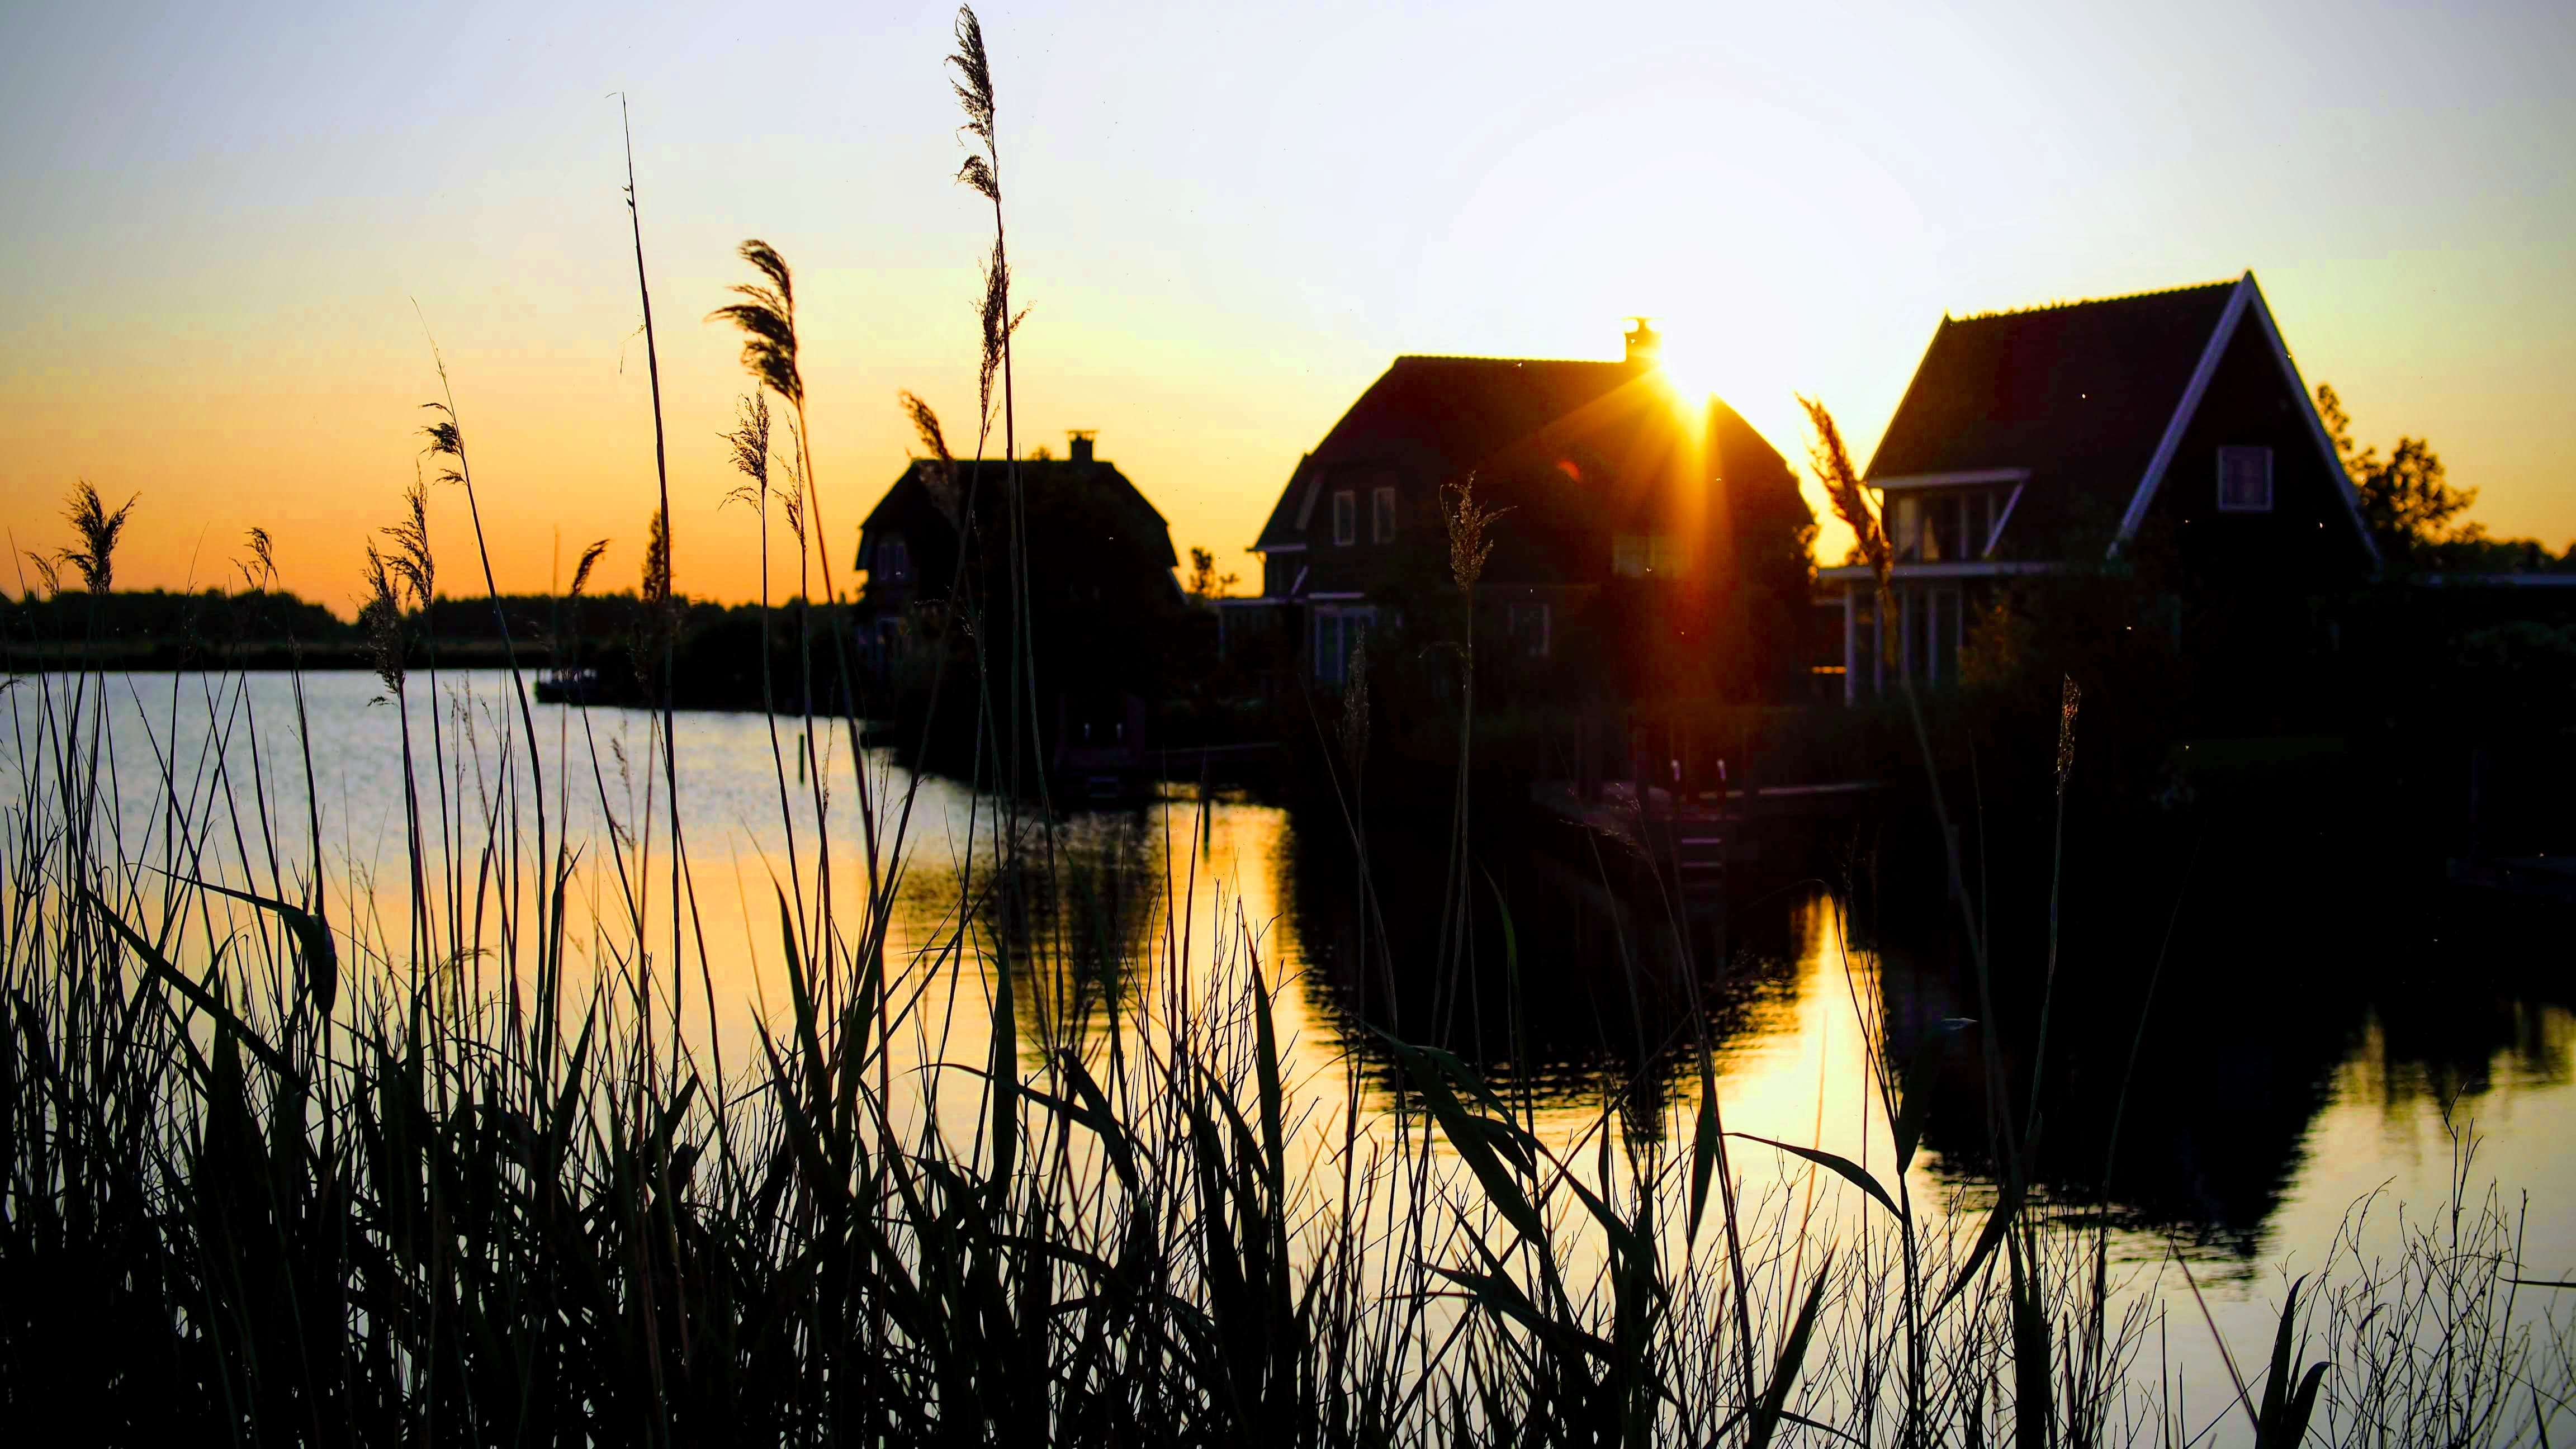 Silhouette Photograph of Houses Beside River